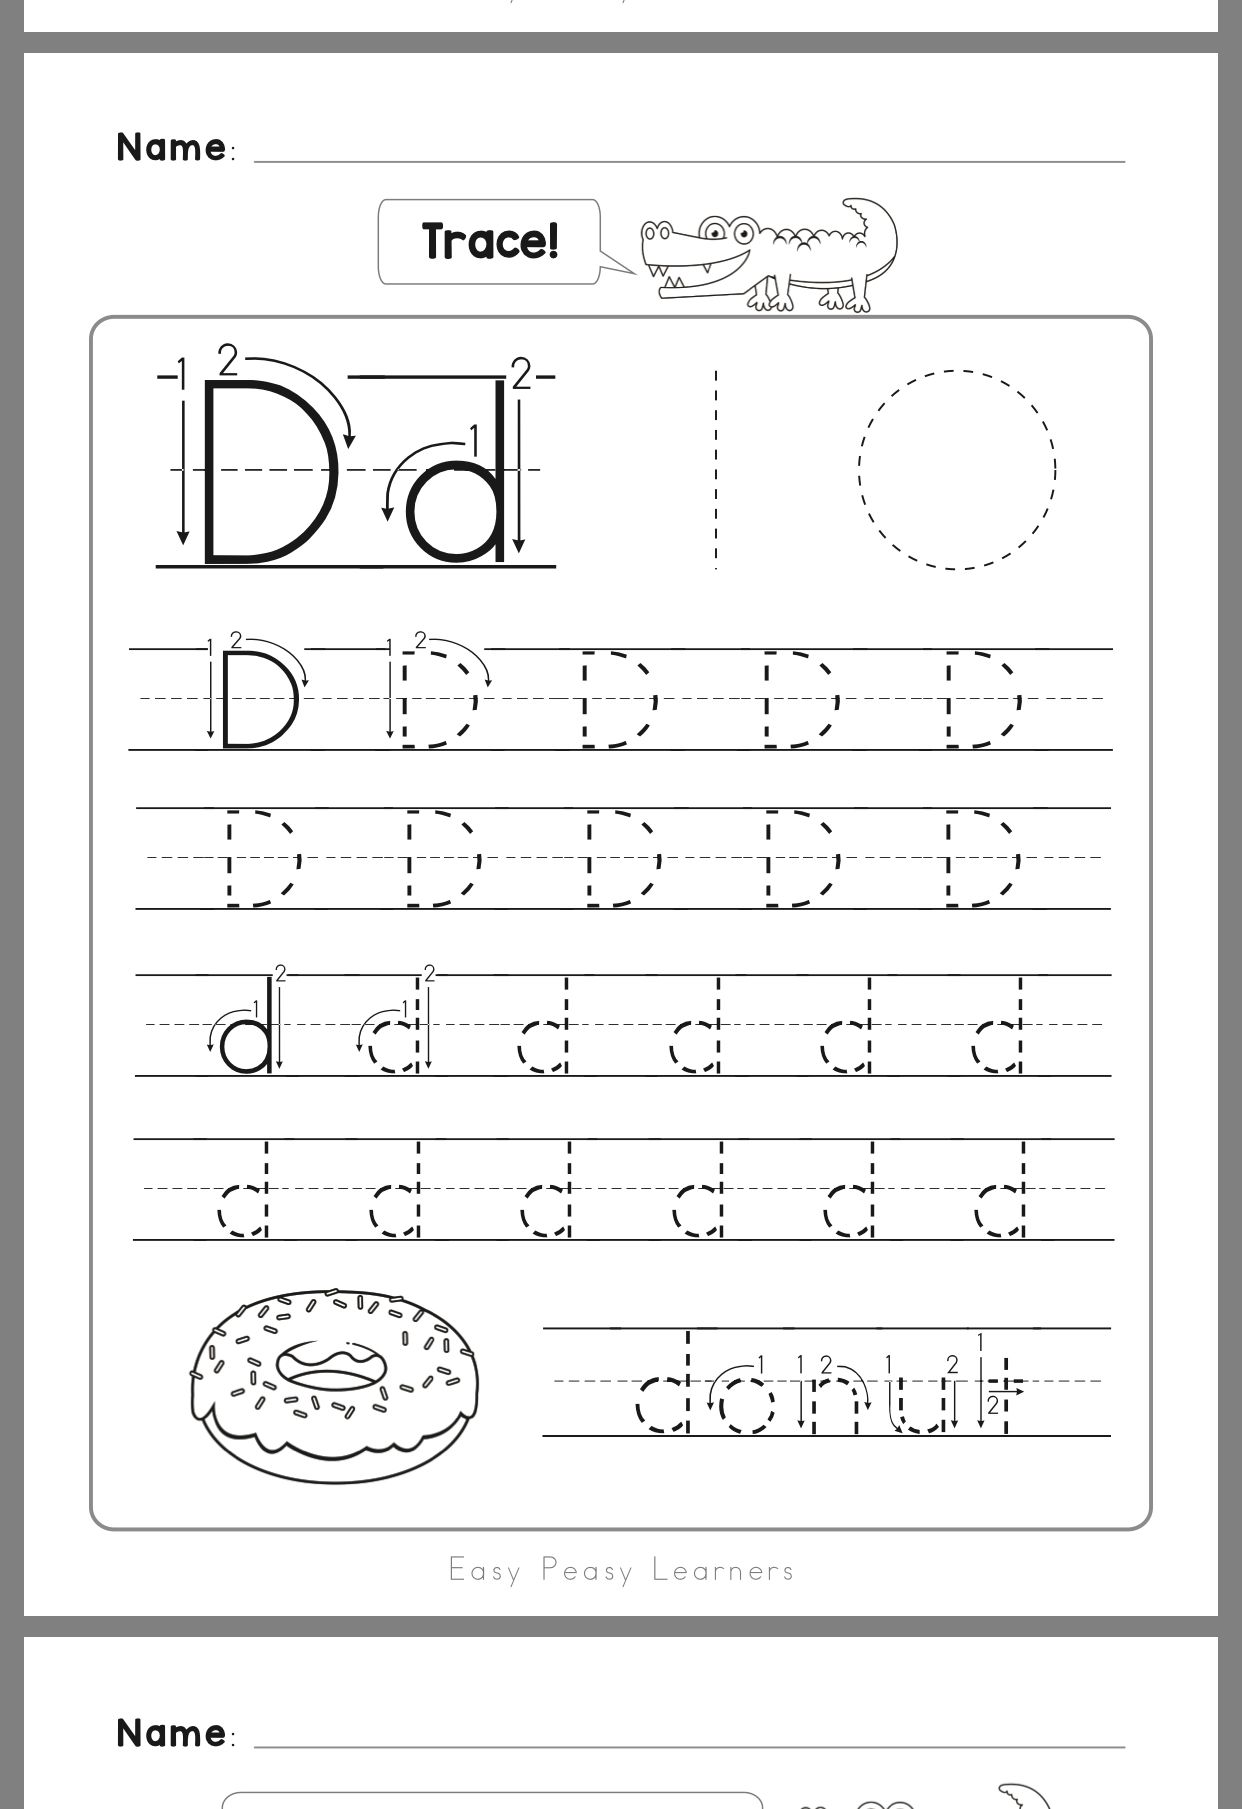 Pin By Golden Style Book On Learning The Alphabet